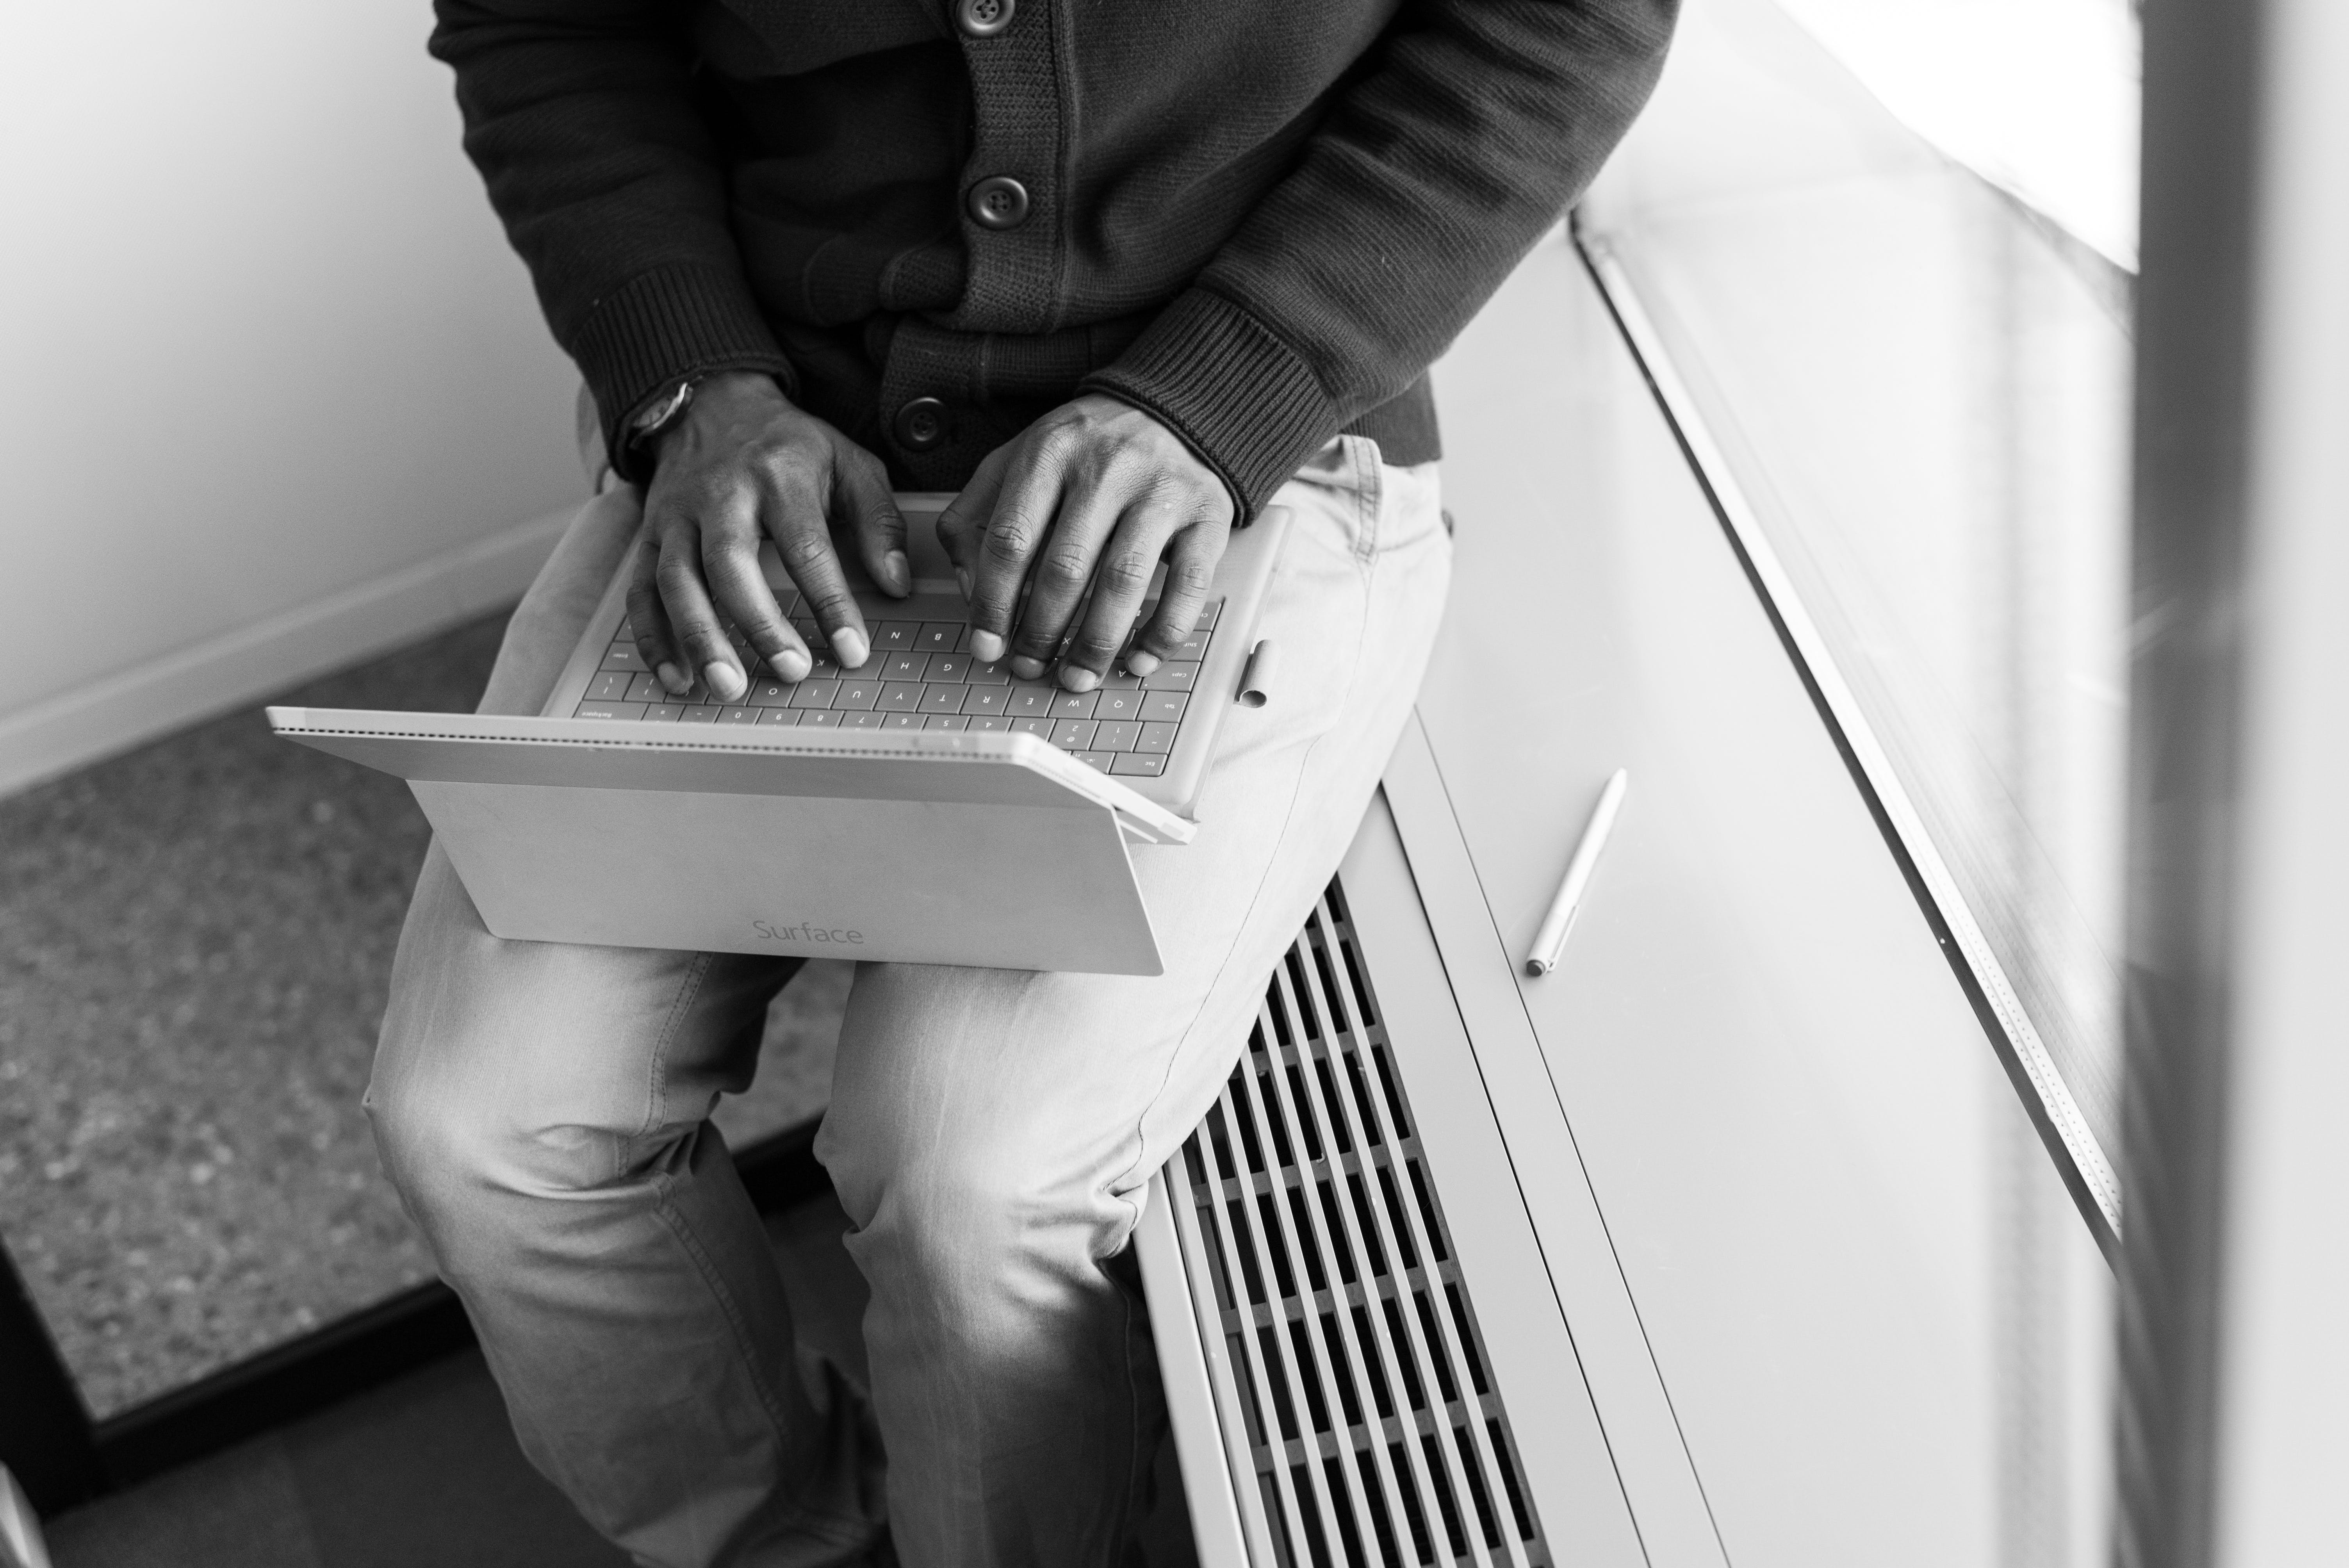 Greyscale Photo of Man Using Laptop Computer